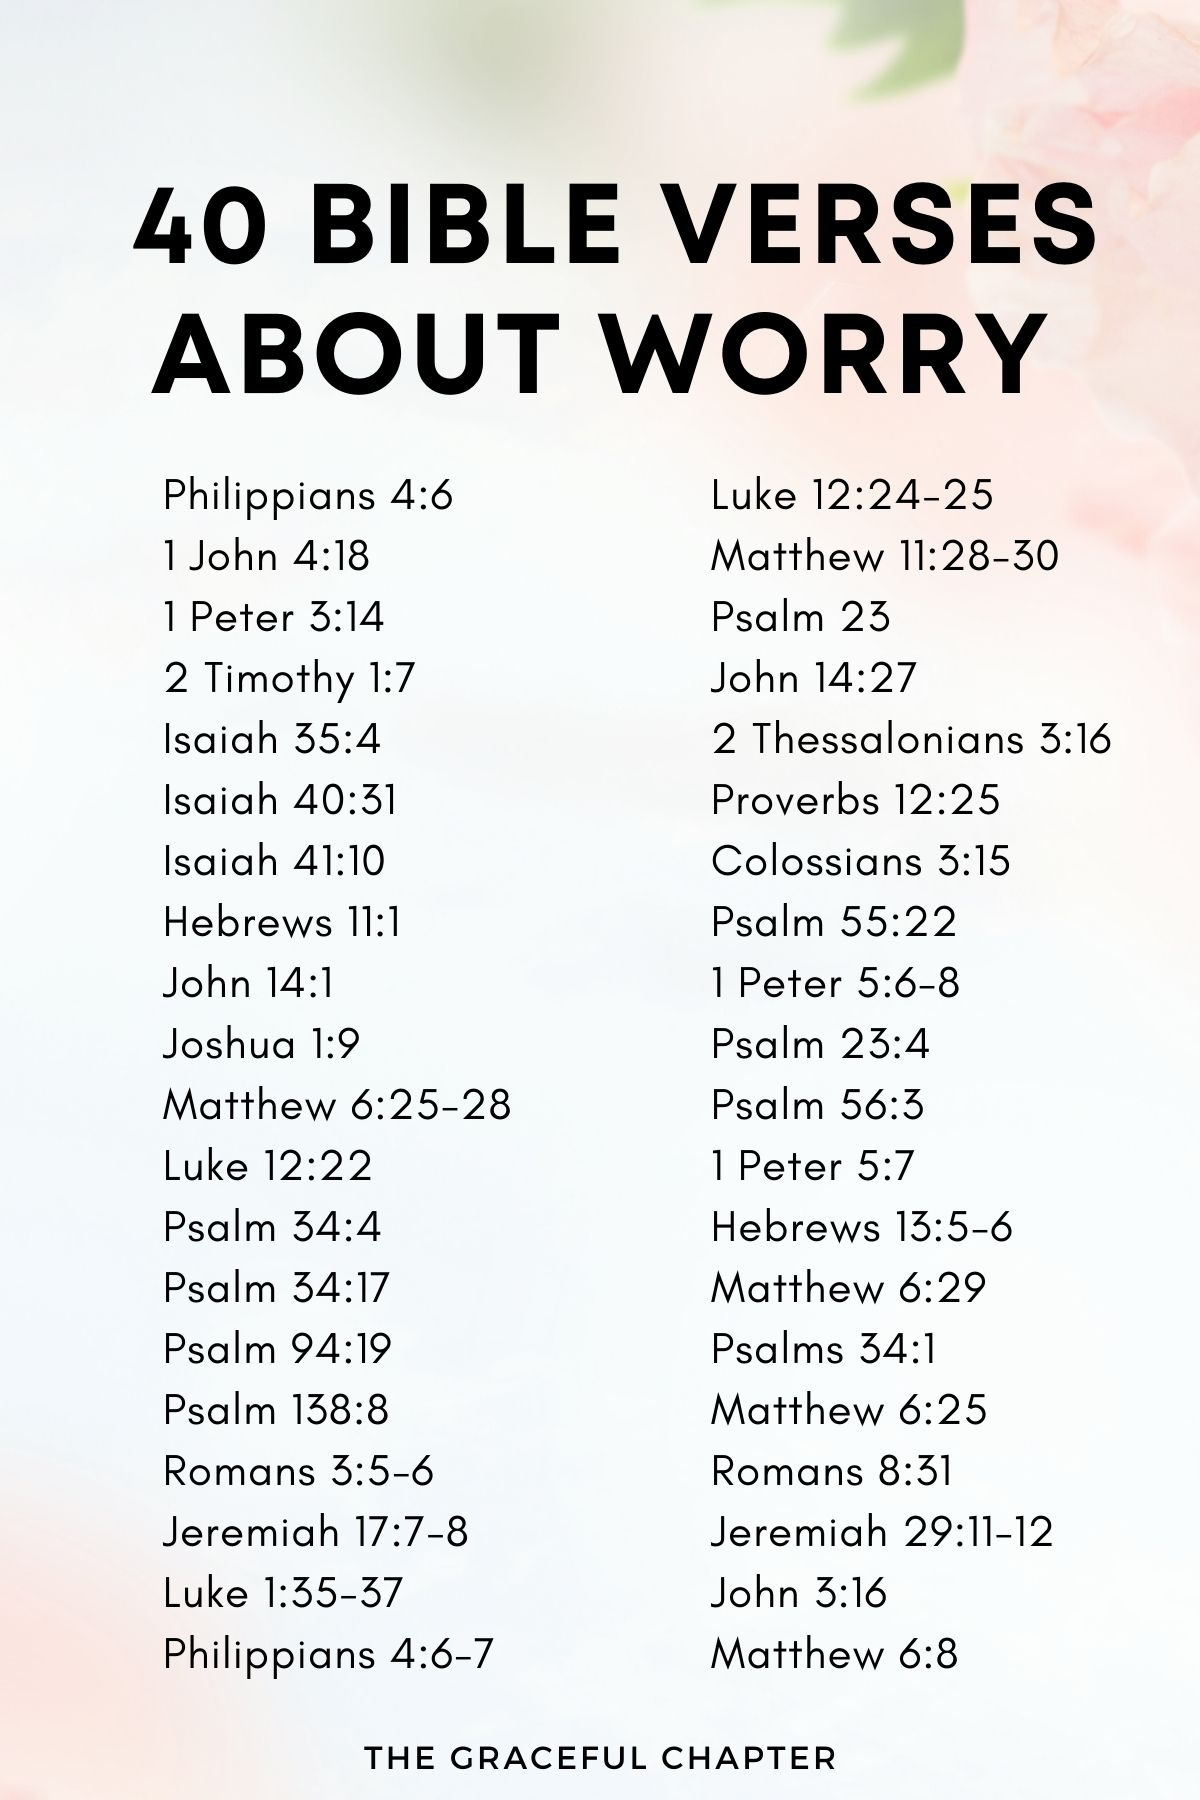 40 Bible verses about worry